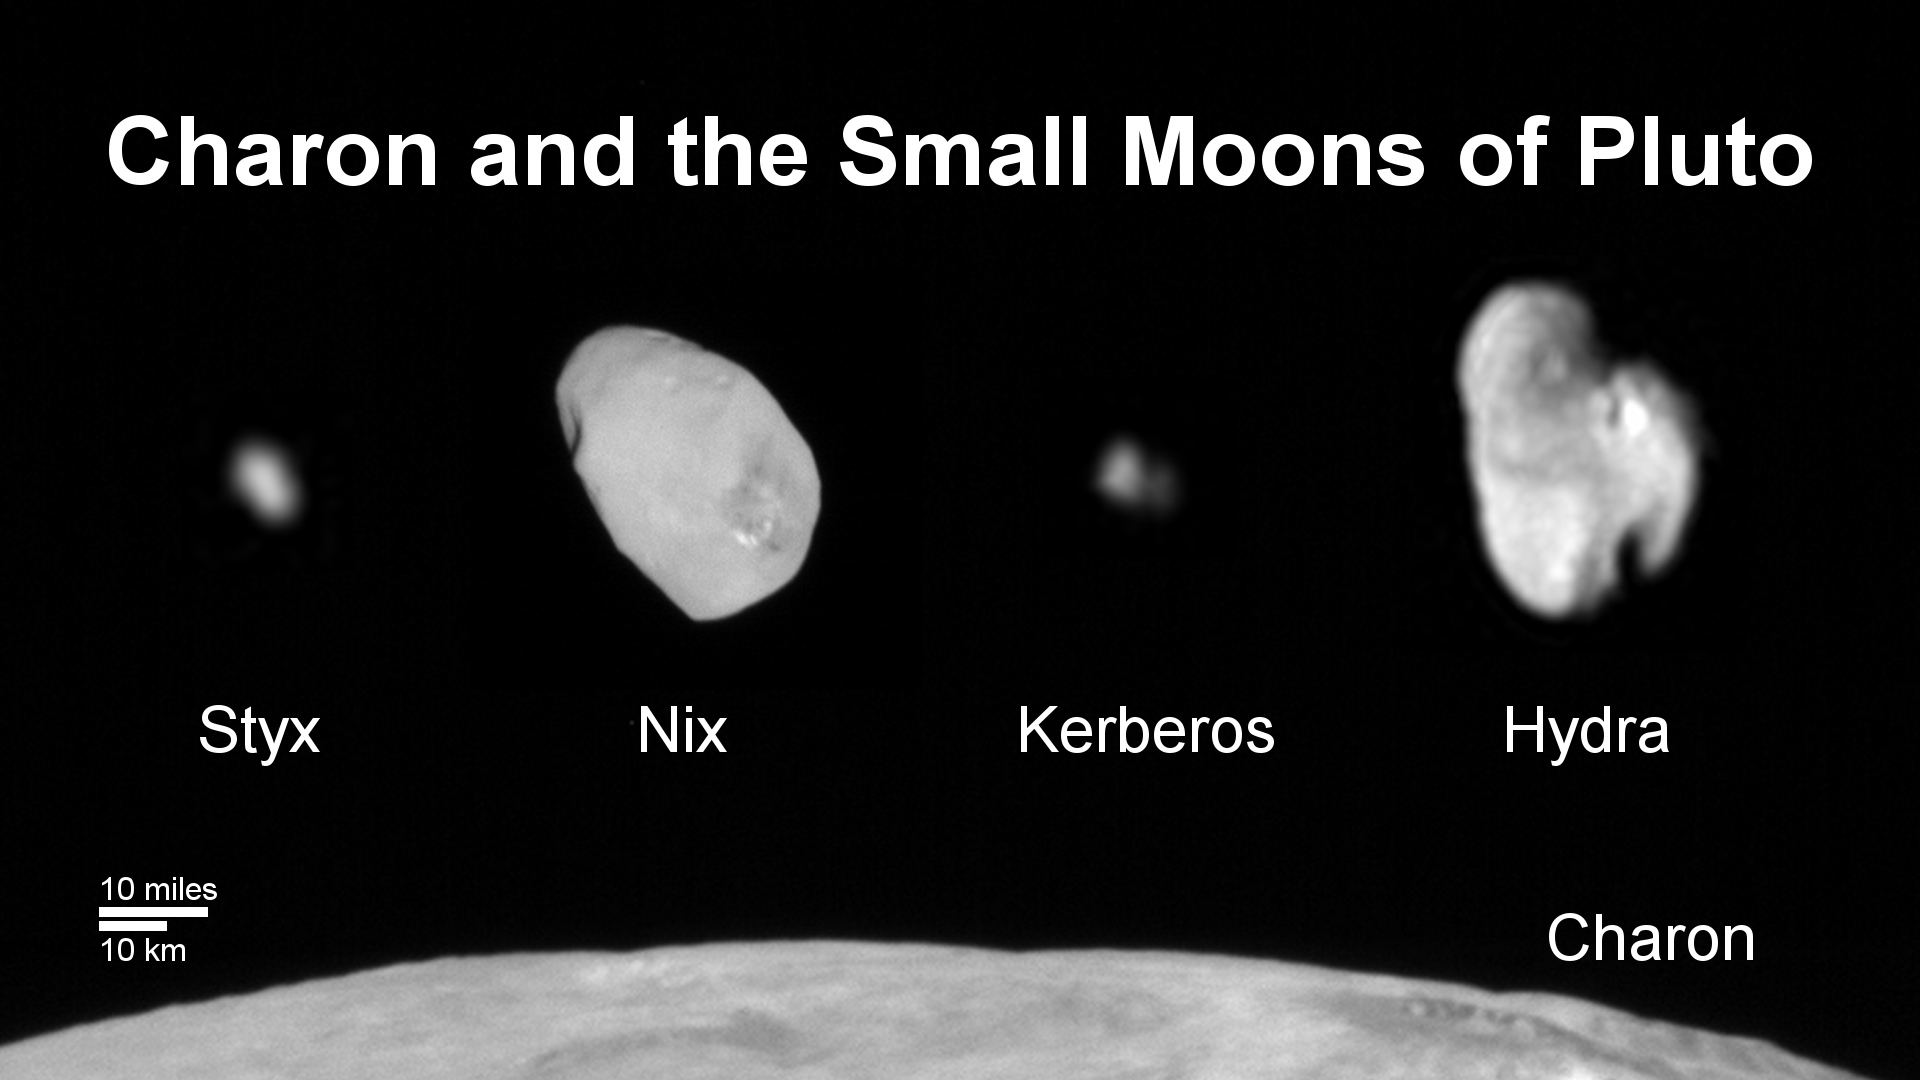 Dps 2015 Pluto S Small Moons Styx Nix Kerberos And